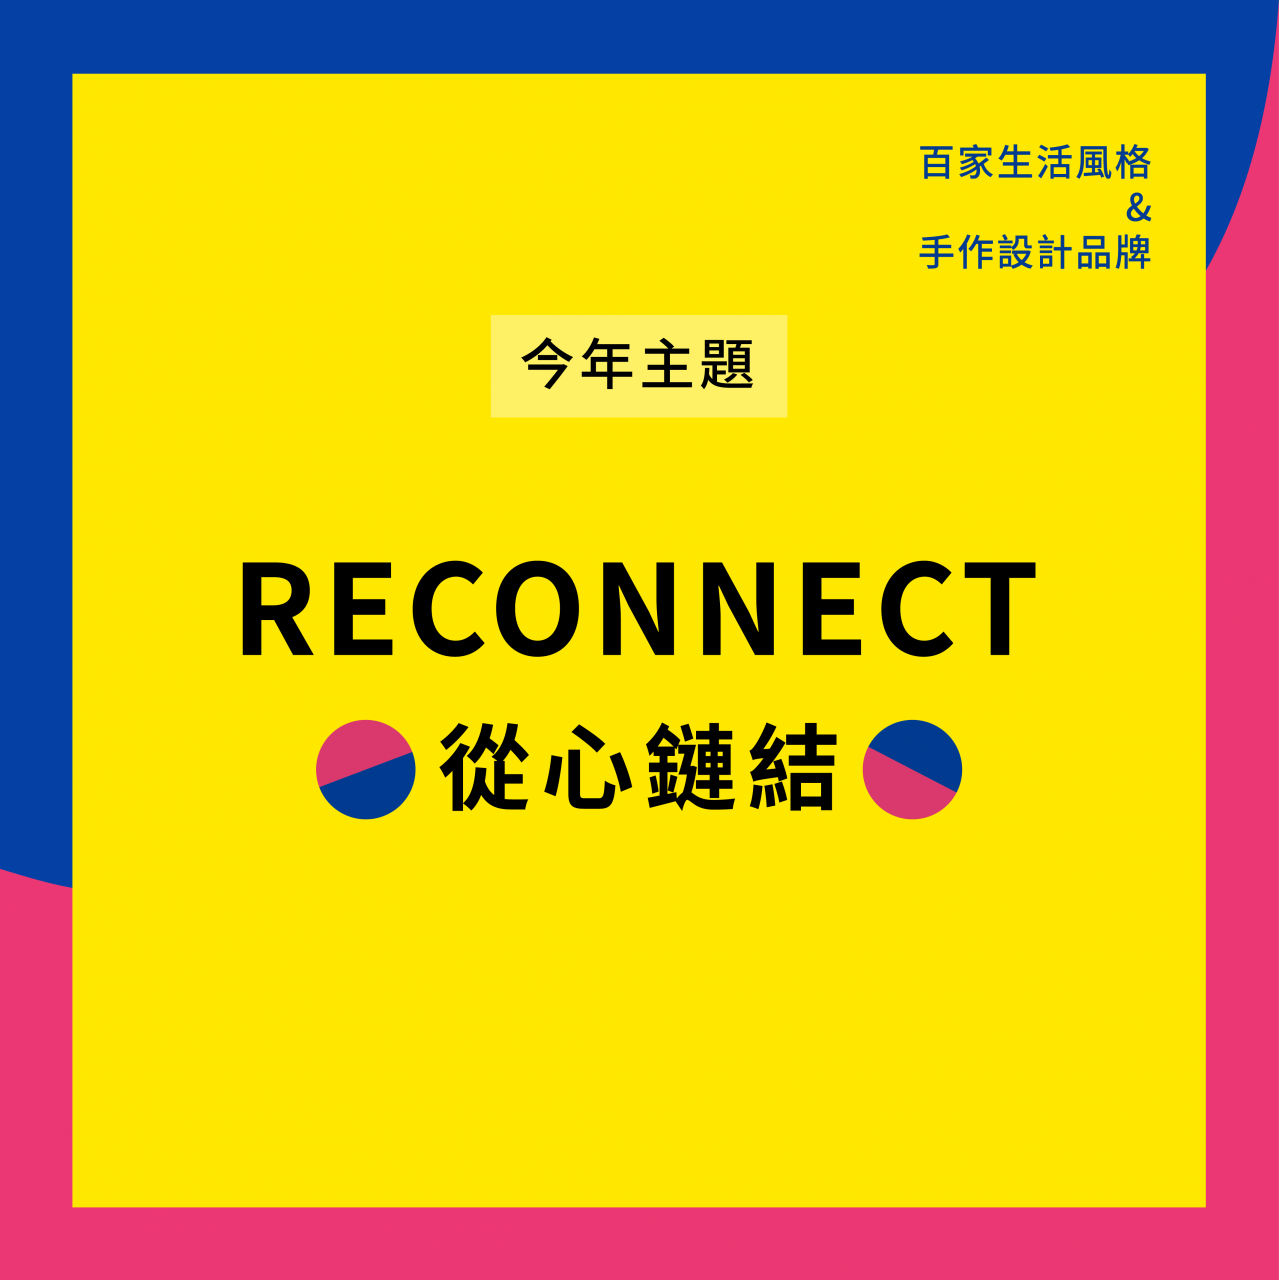 Reconnect 從心鏈結